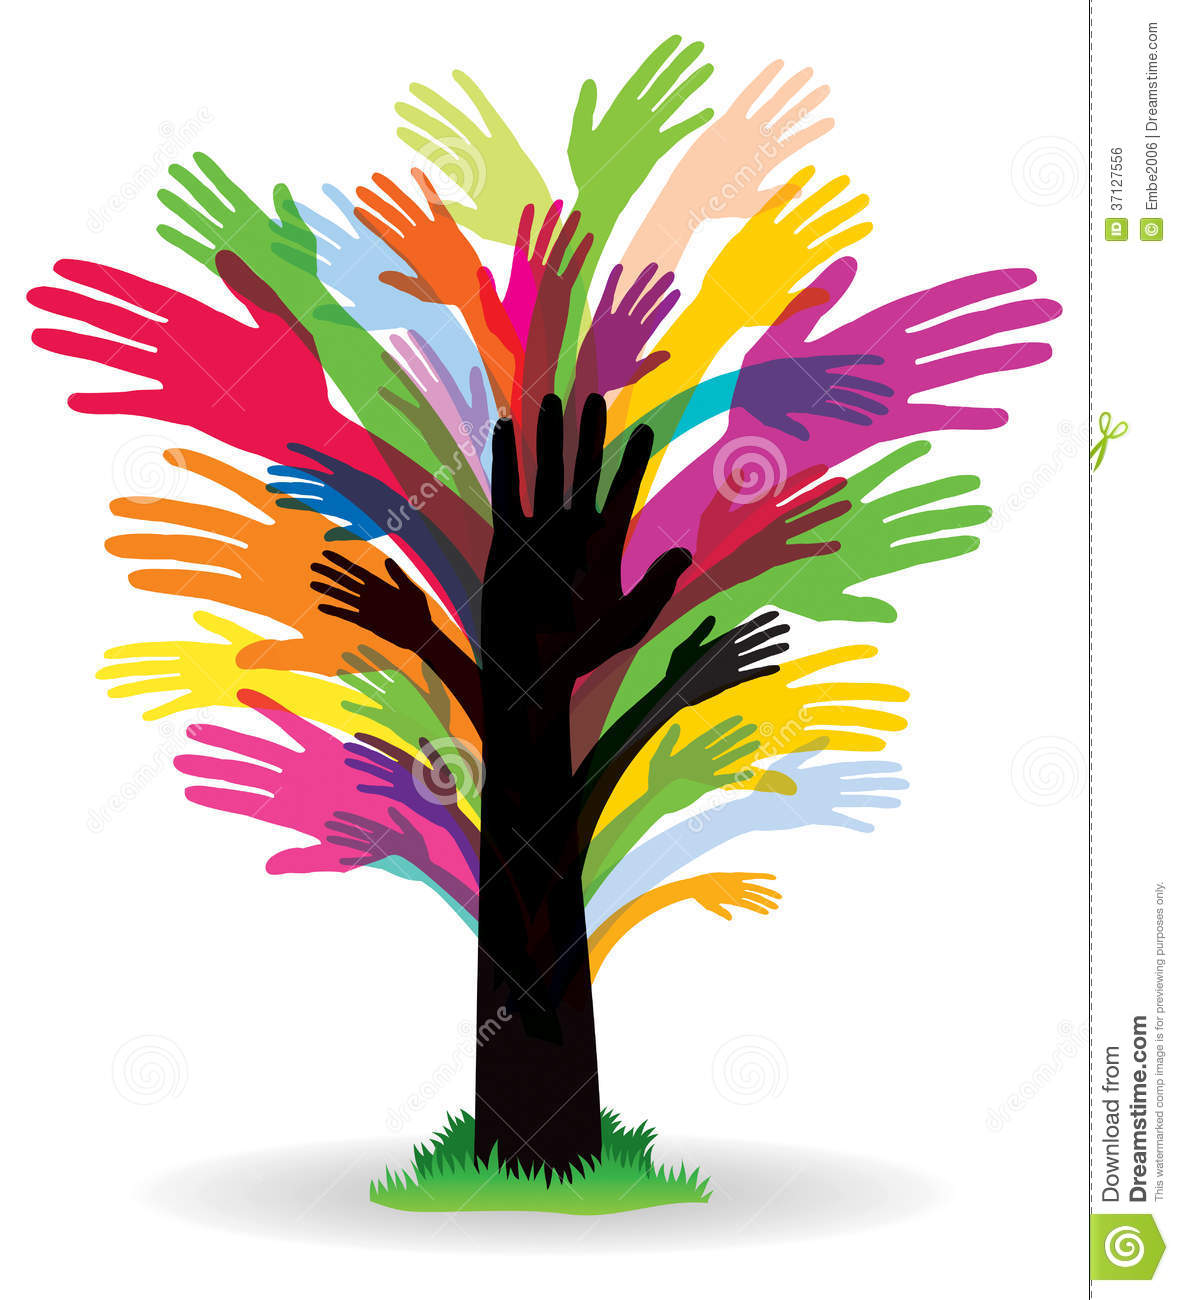 ... tree image logo icon with hands as a trunk and leaves mr no pr no 2